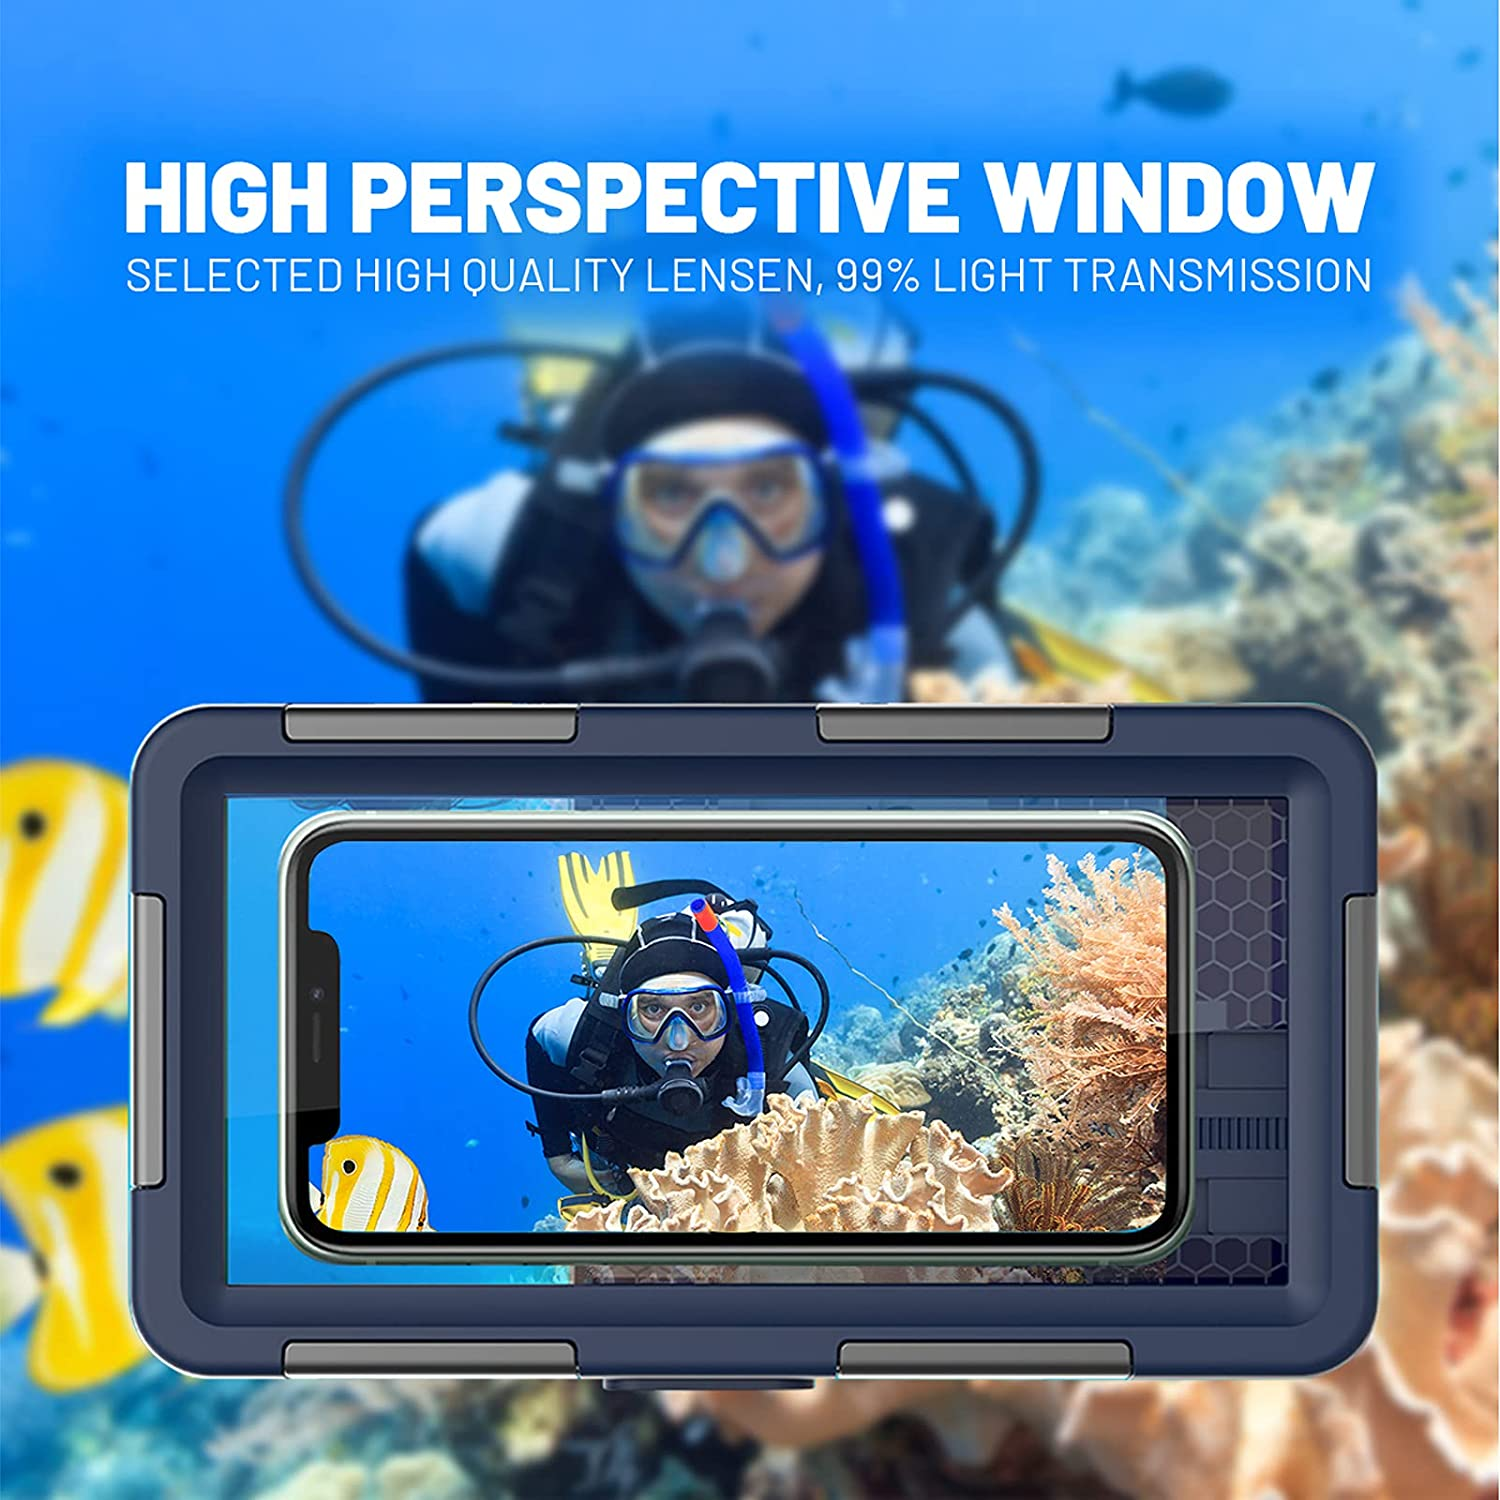 Waterproof Phone Case – Professional 50ft Waterproof Protective Case for iPhone, Samsung, LG Series – Universal Waterproof Cell Phone Case for Underwater Diving and Snorkeling with Lanyard